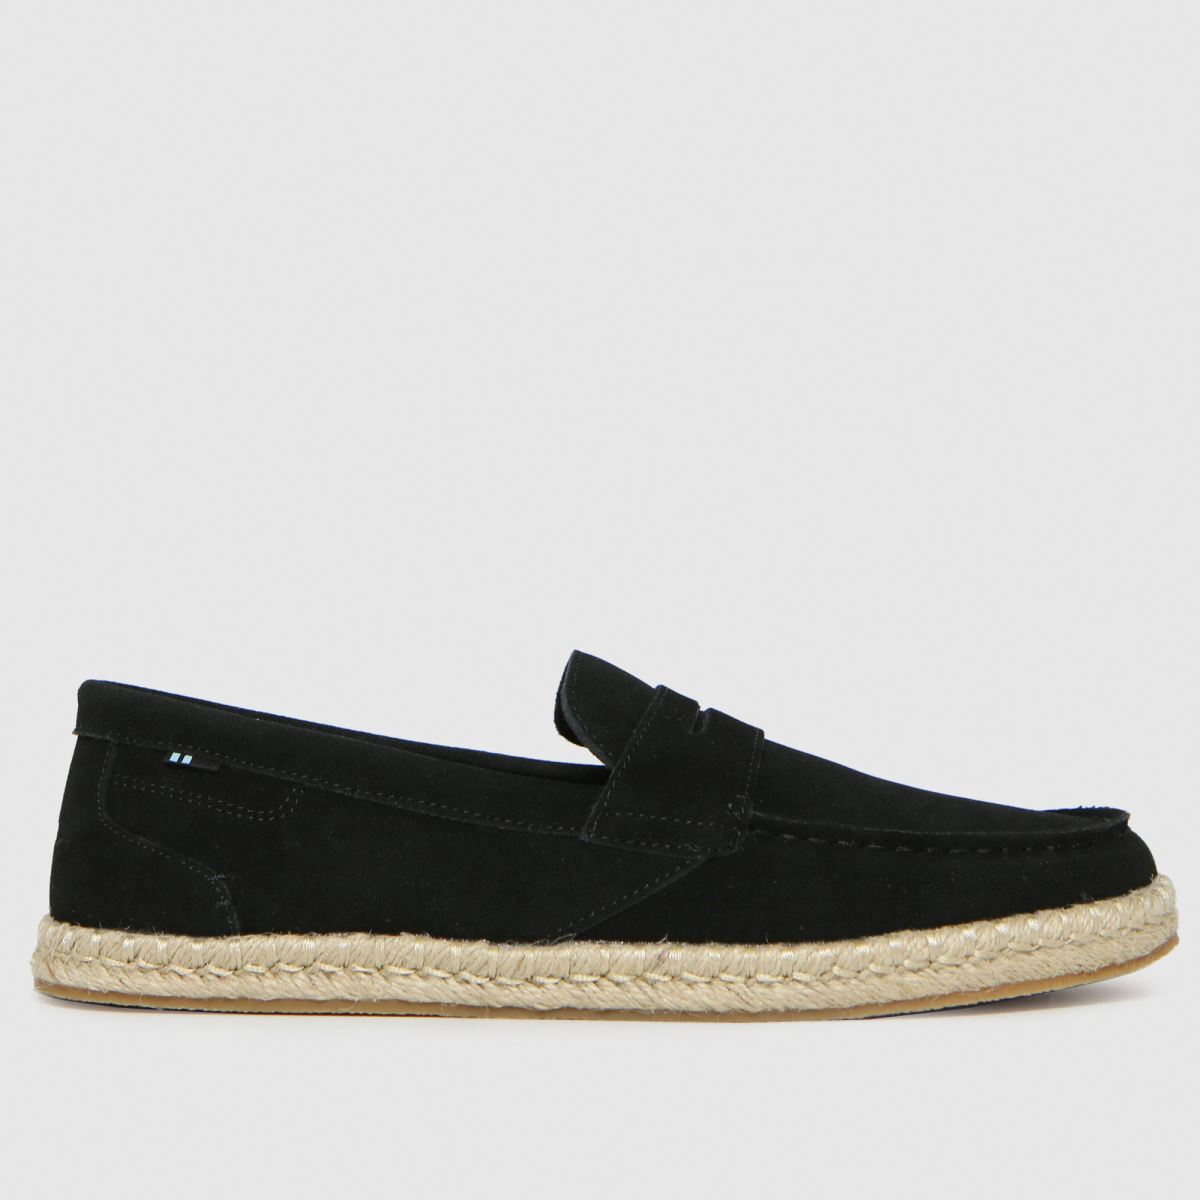 TOMS Black Stanford Rope Shoes